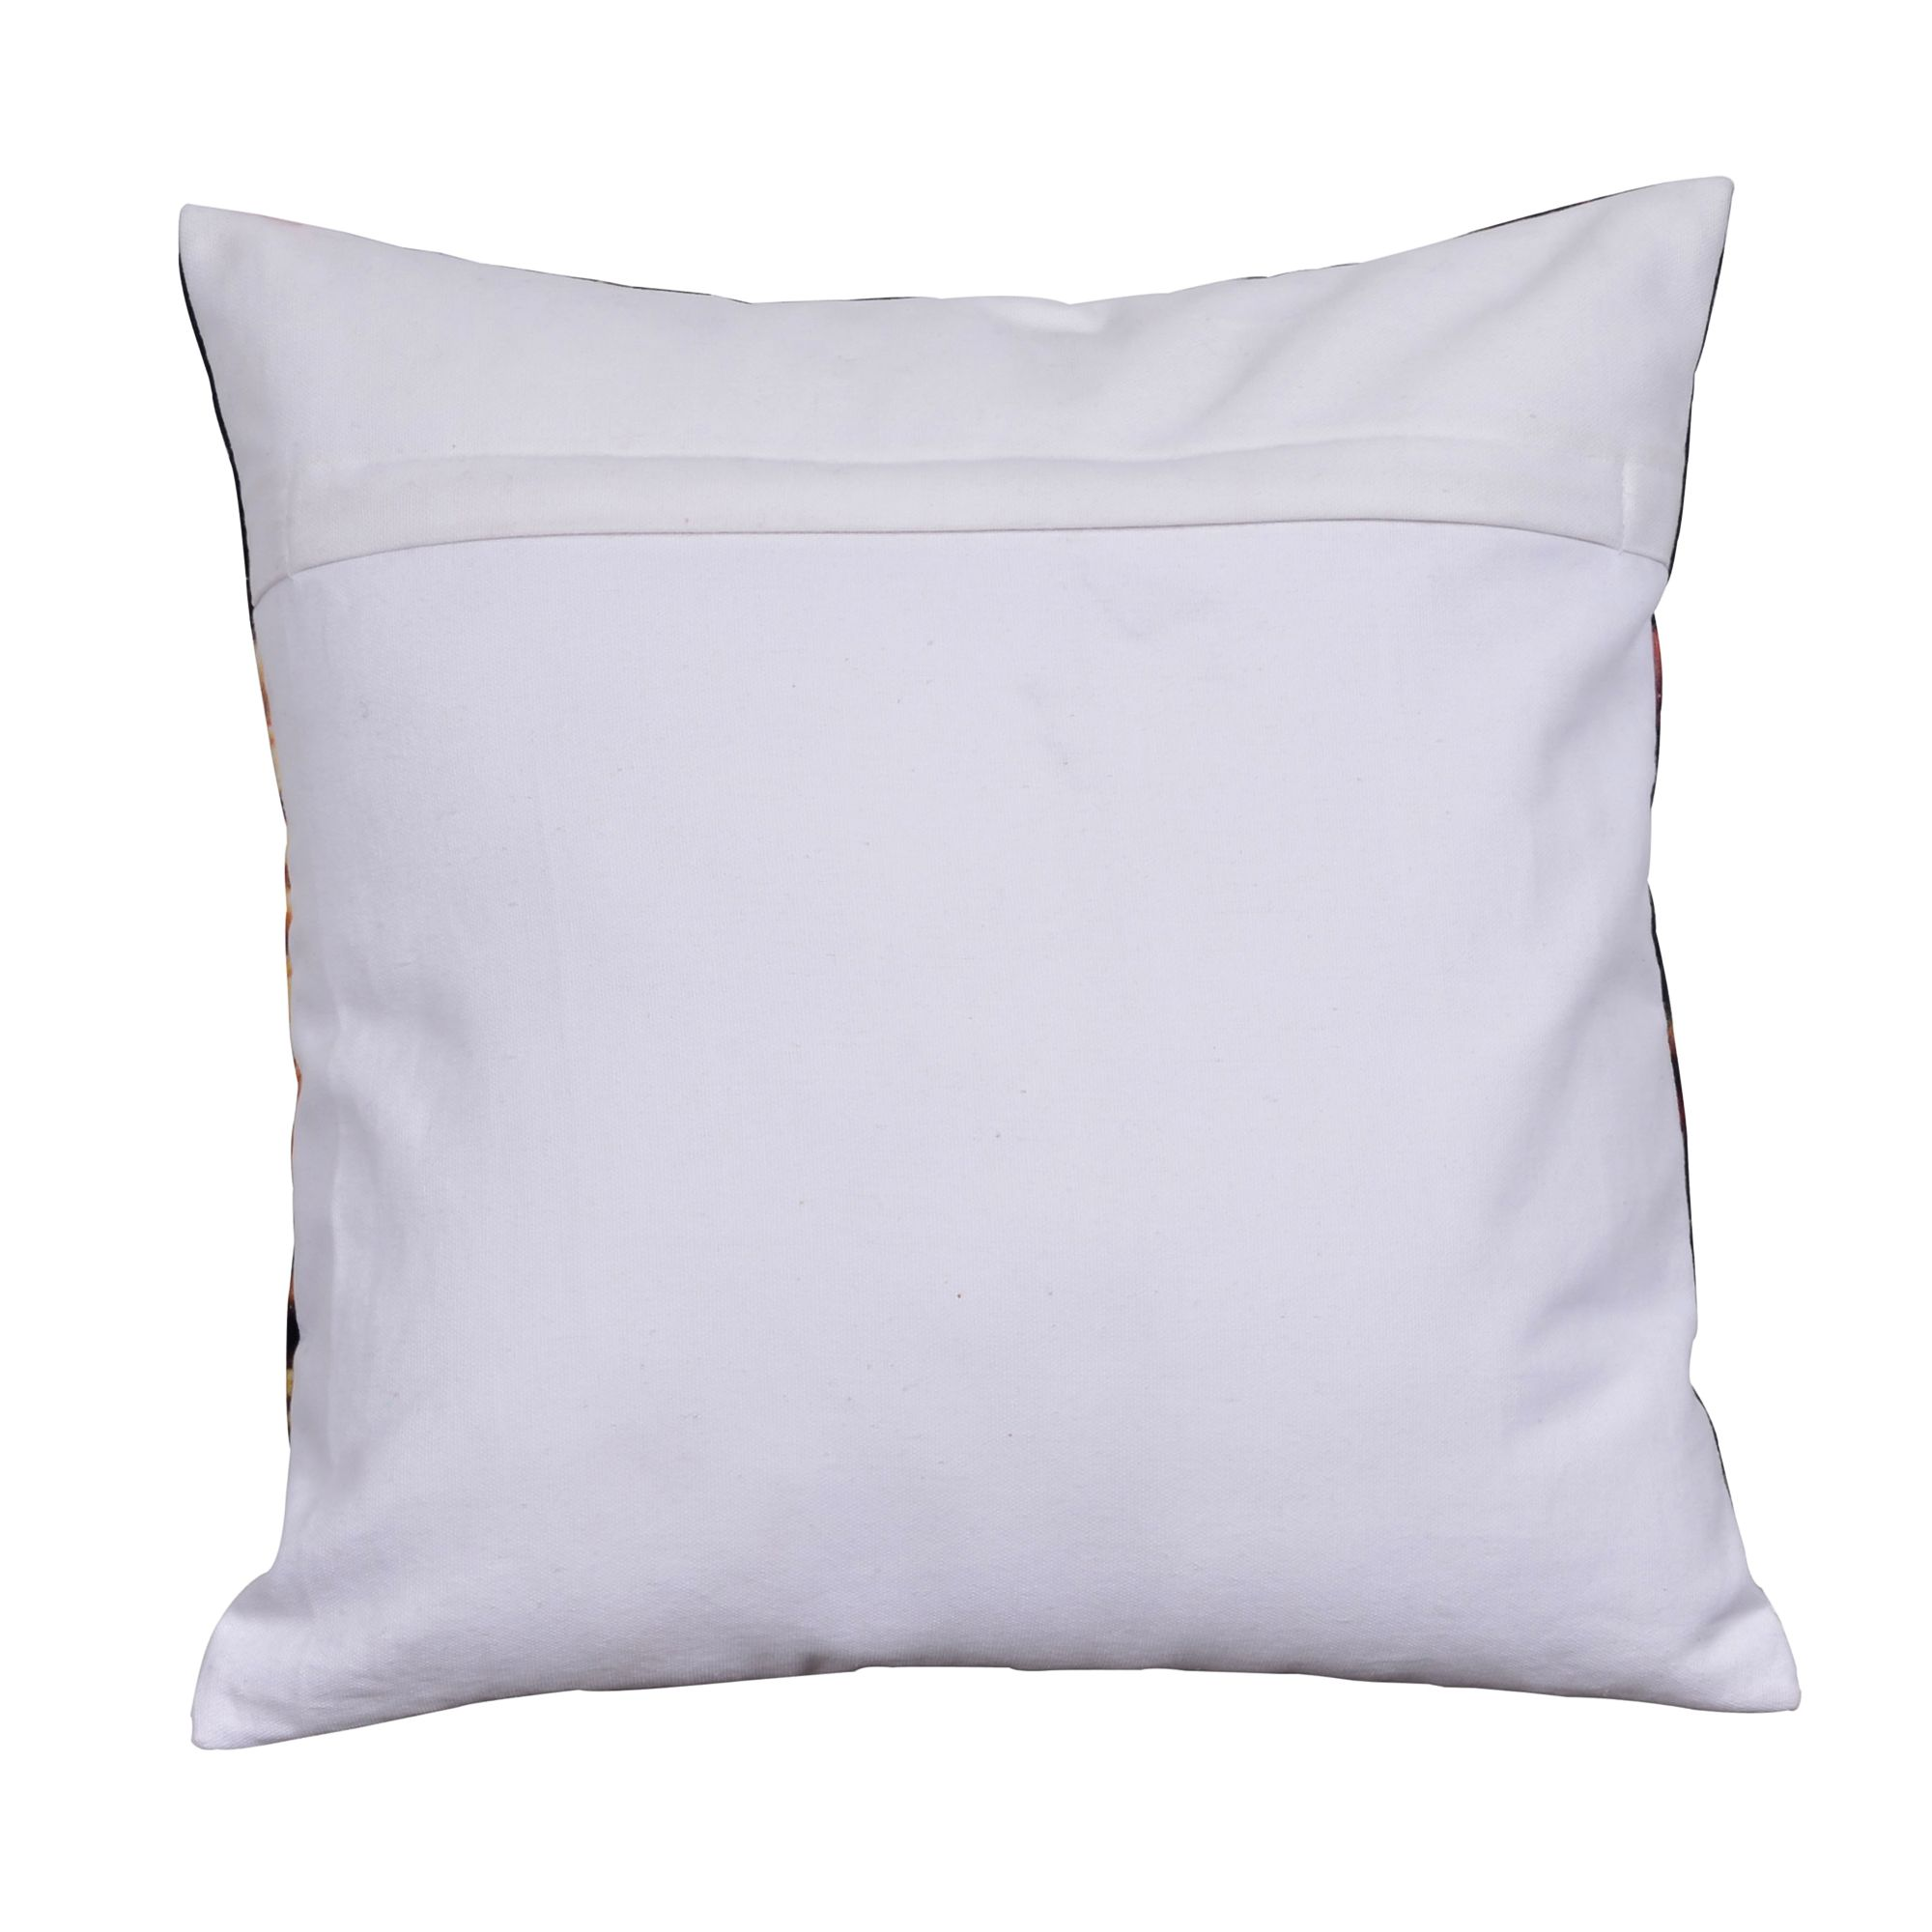 "Infinity 16"" Cushion Cover"